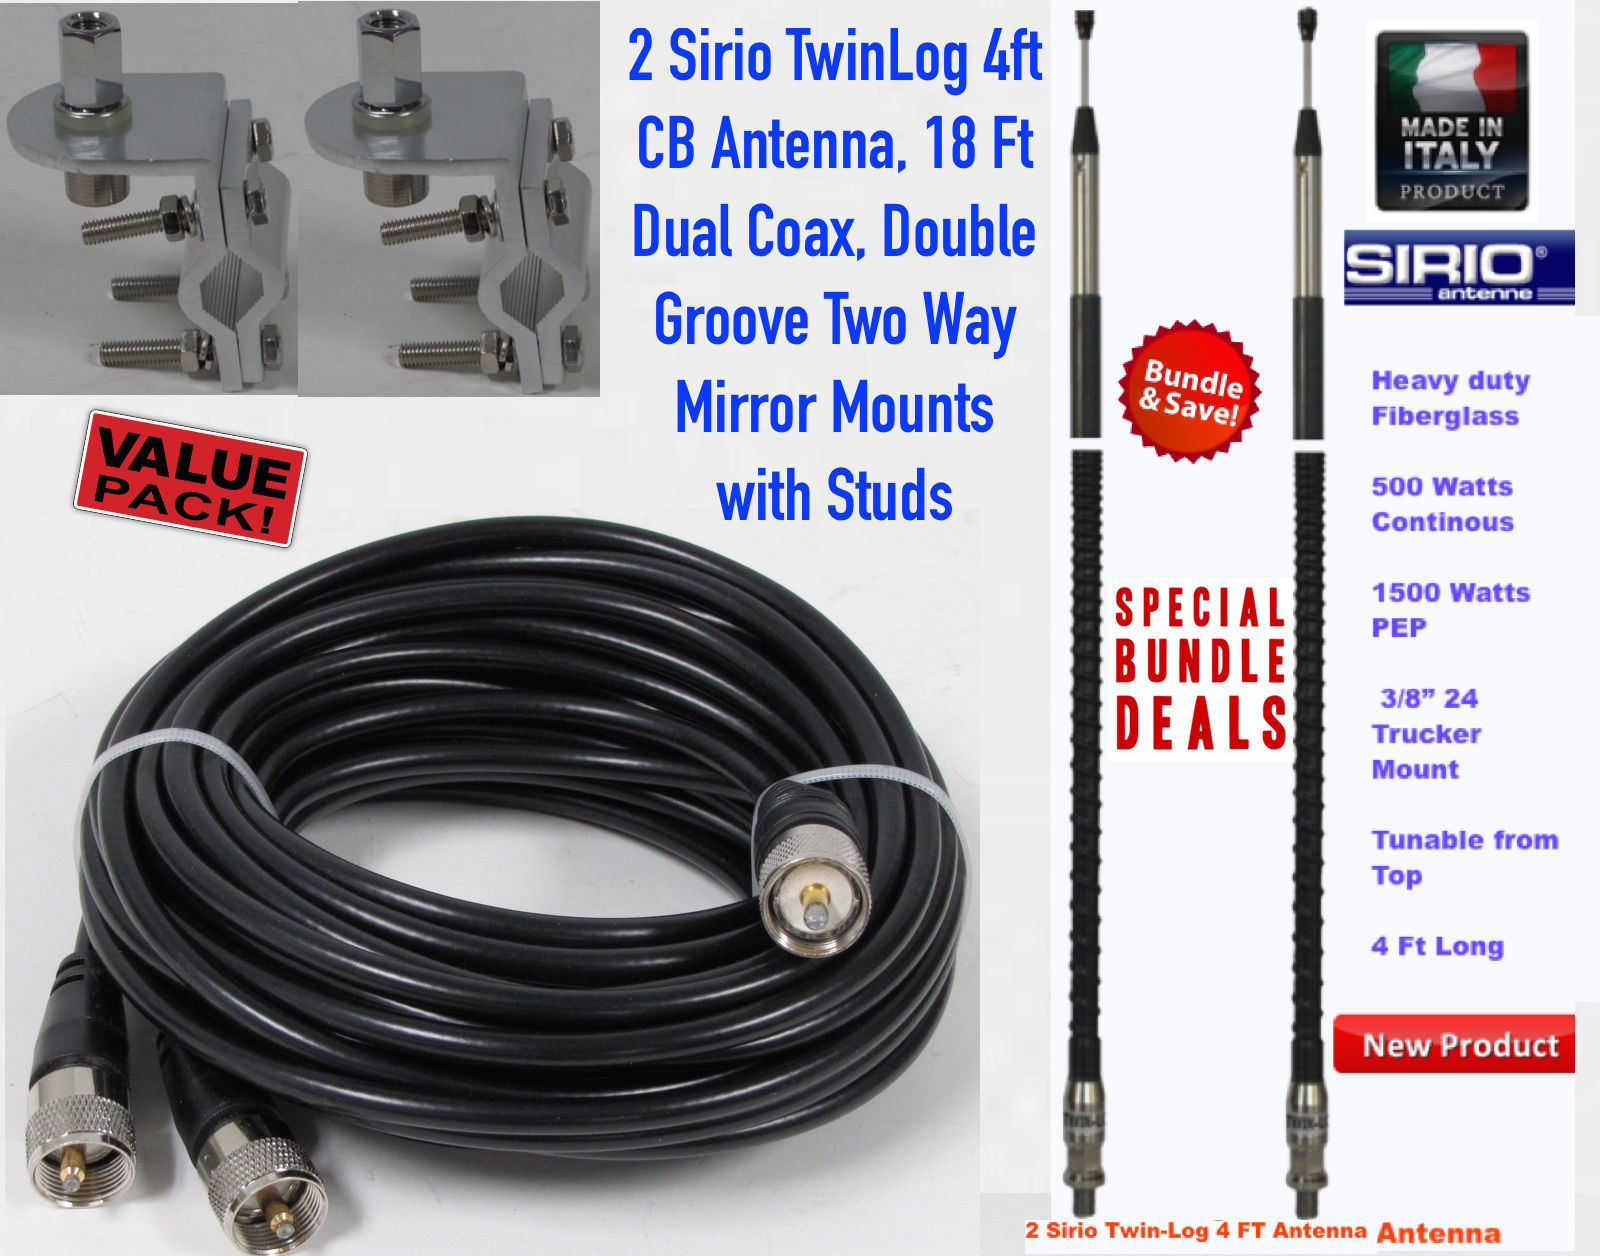 CB Antenna Kit : Sirio Antenna, High Performance Antenna